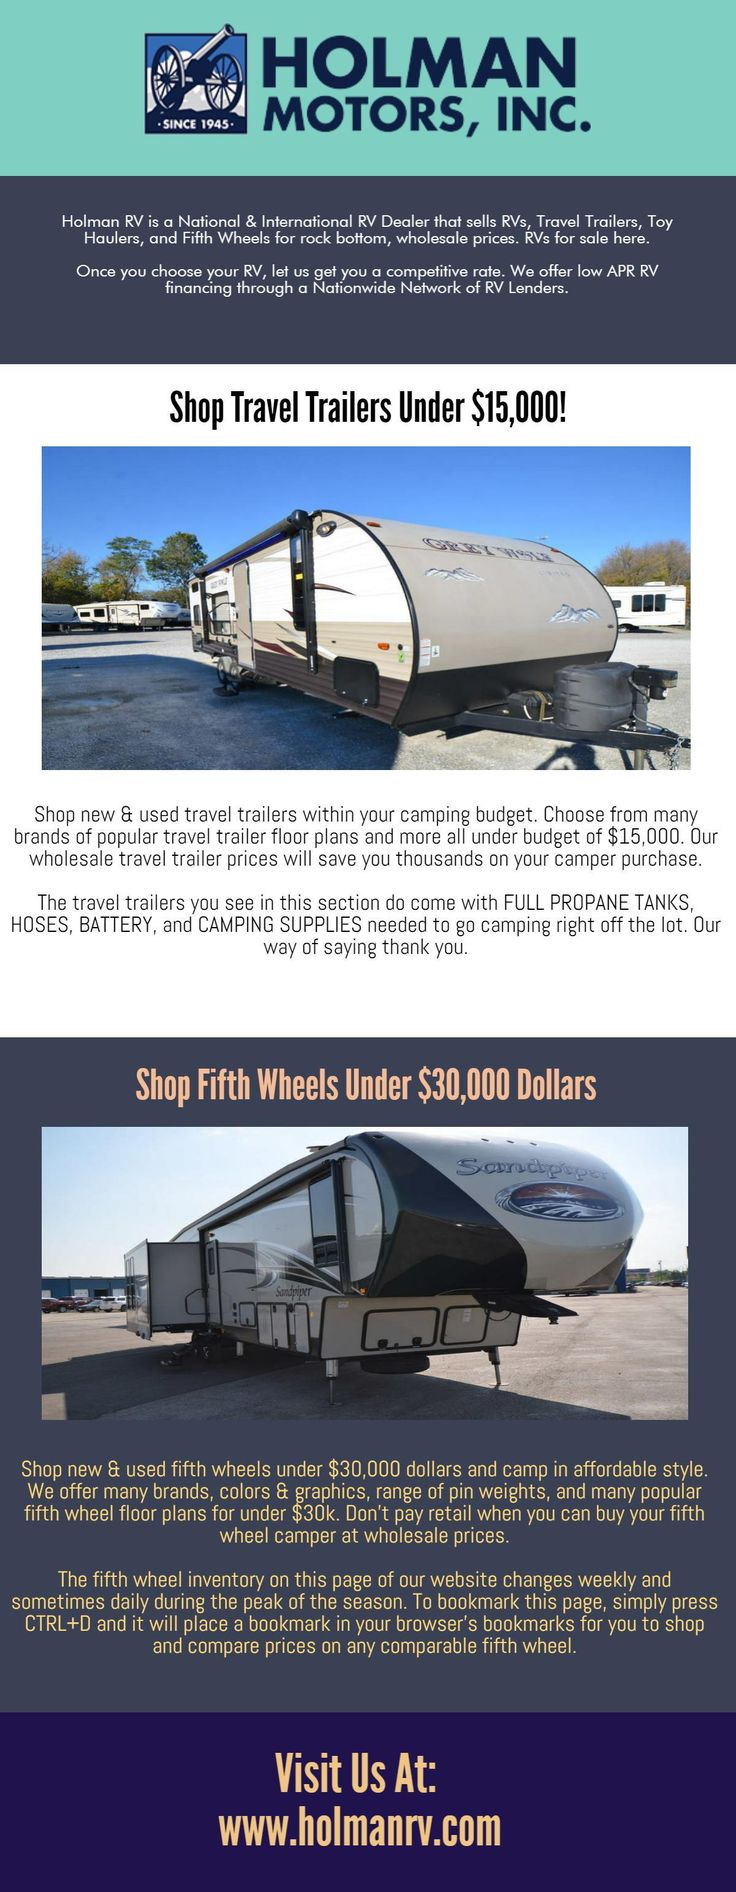 Holman rv is a national international rv dealer that sells rvs travel trailers